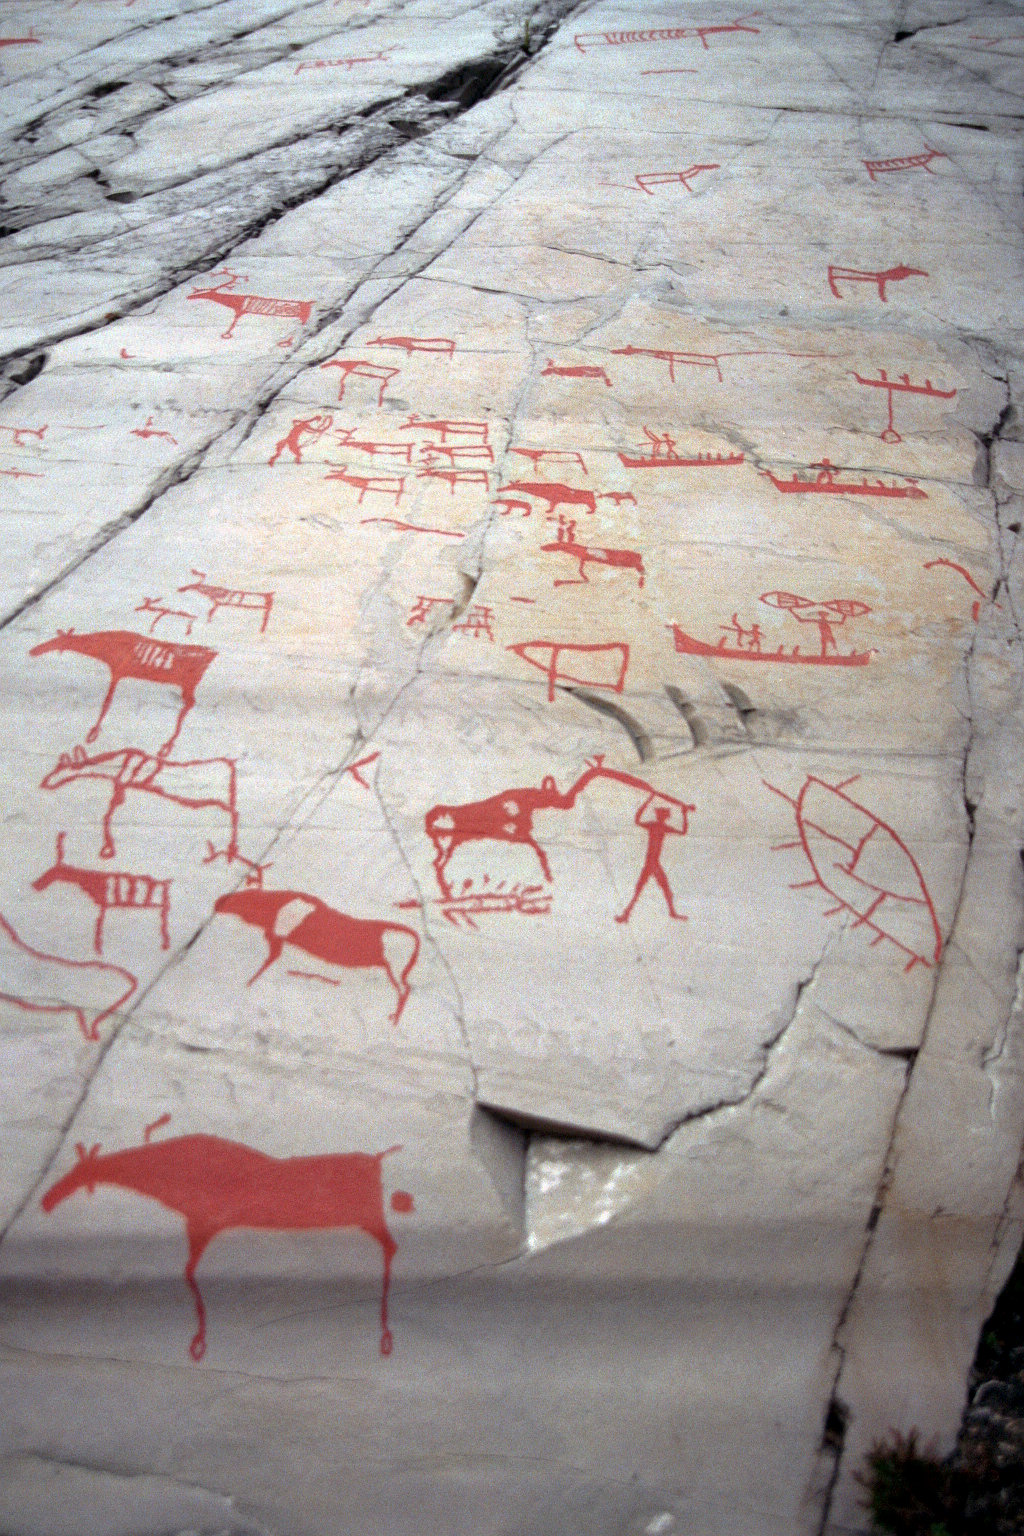 Rock carvings at alta wikipedia